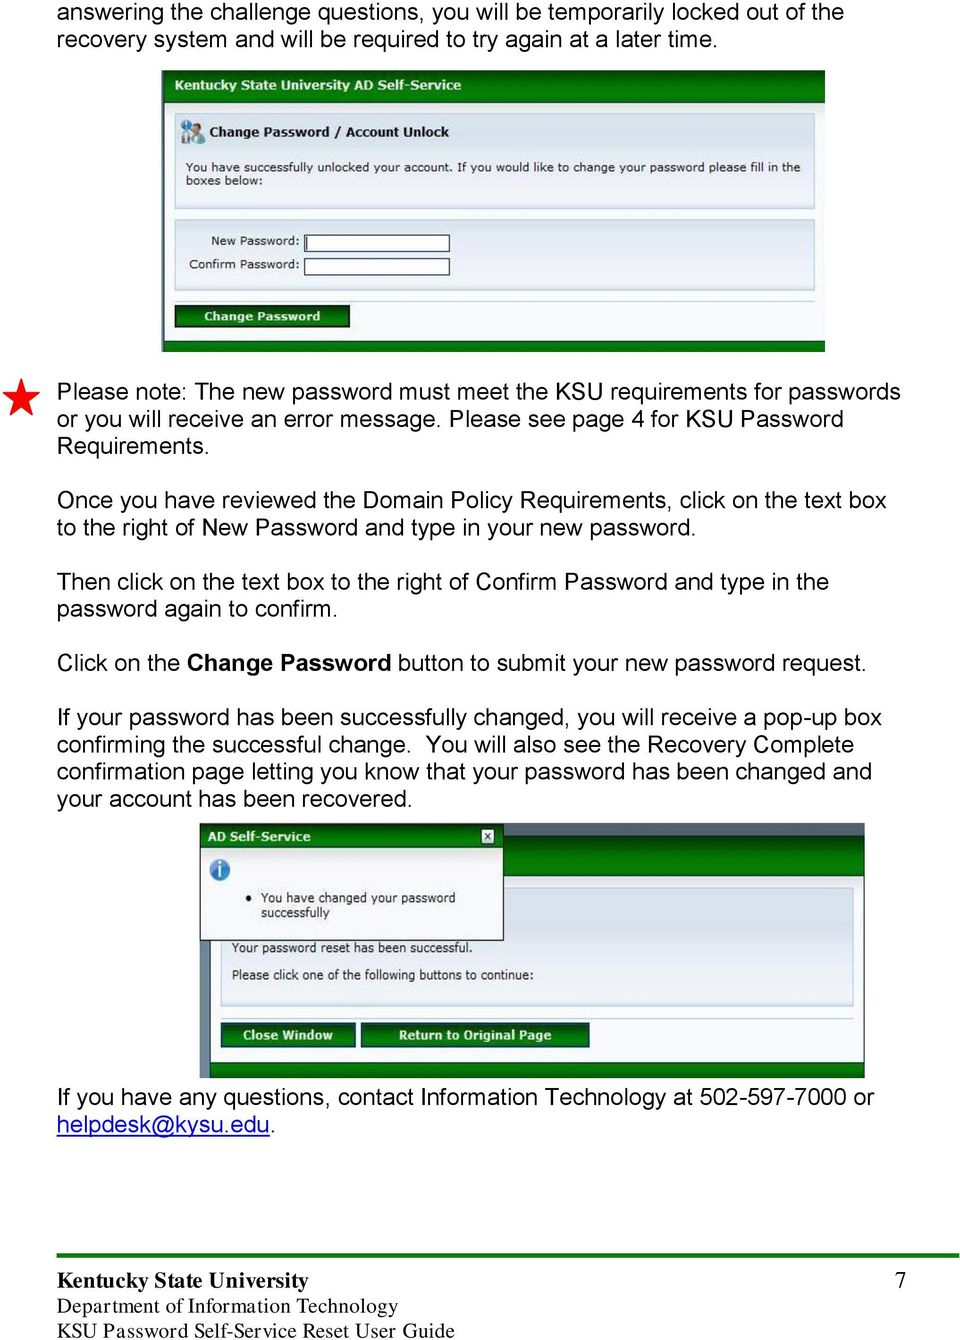 Once you have reviewed the Domain Policy Requirements, click on the text box to the right of New Password and type in your new password.